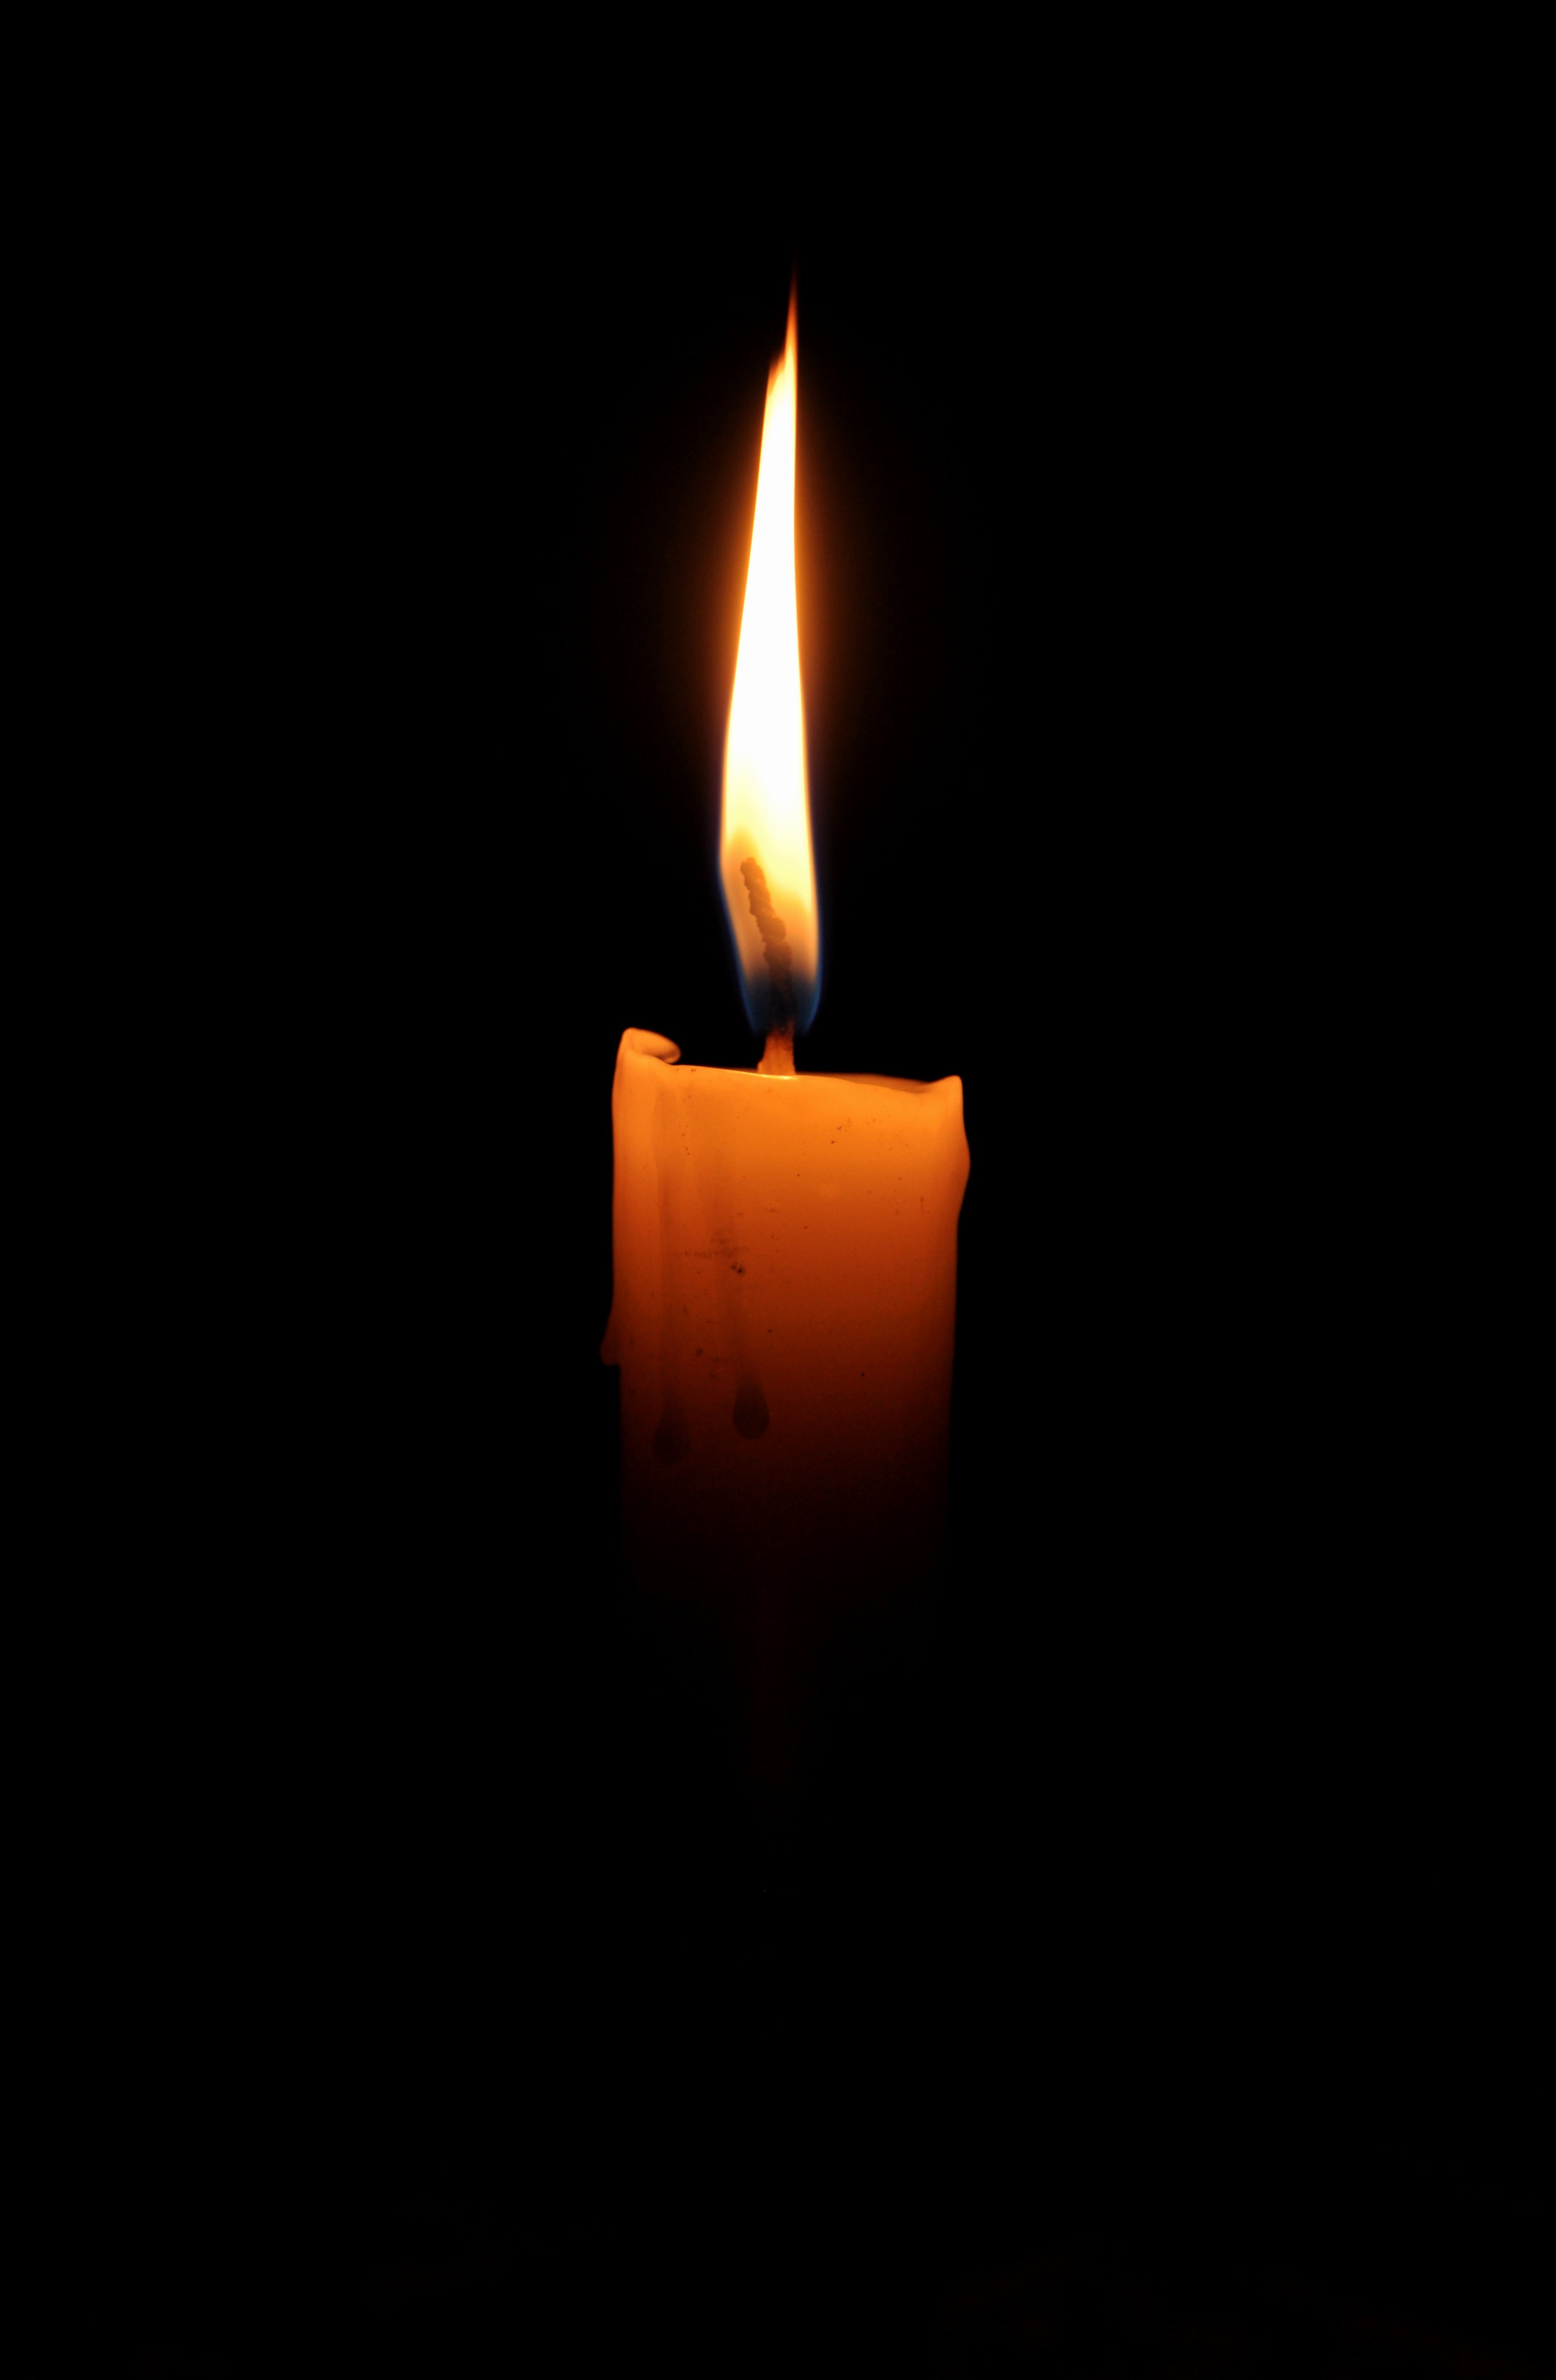 candle in the dark - photo #11